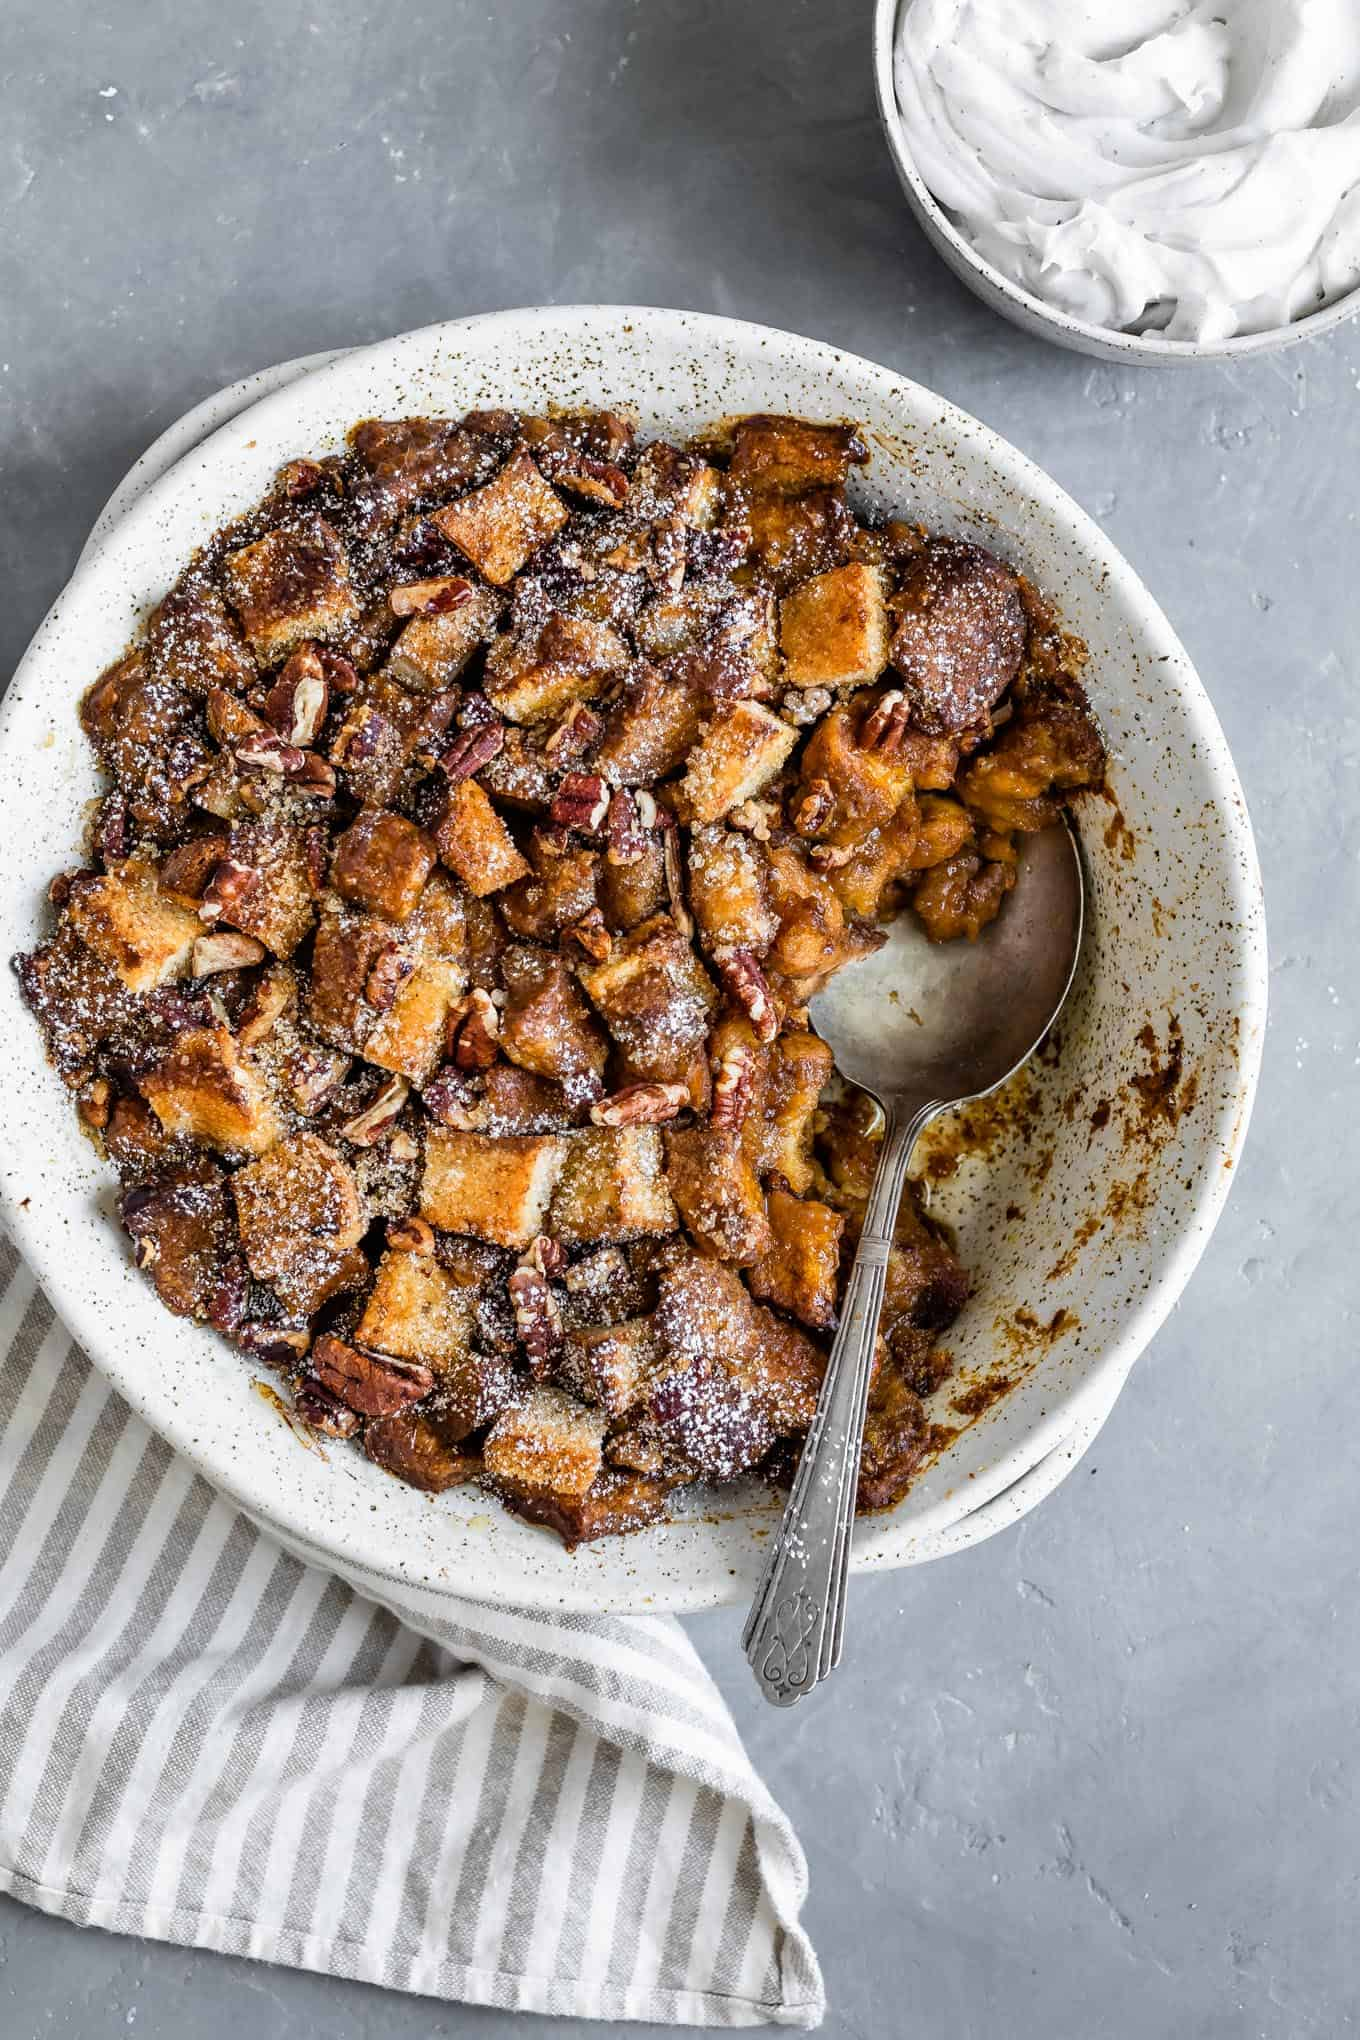 Gluten-Free Vegan Bread Pudding Recipe